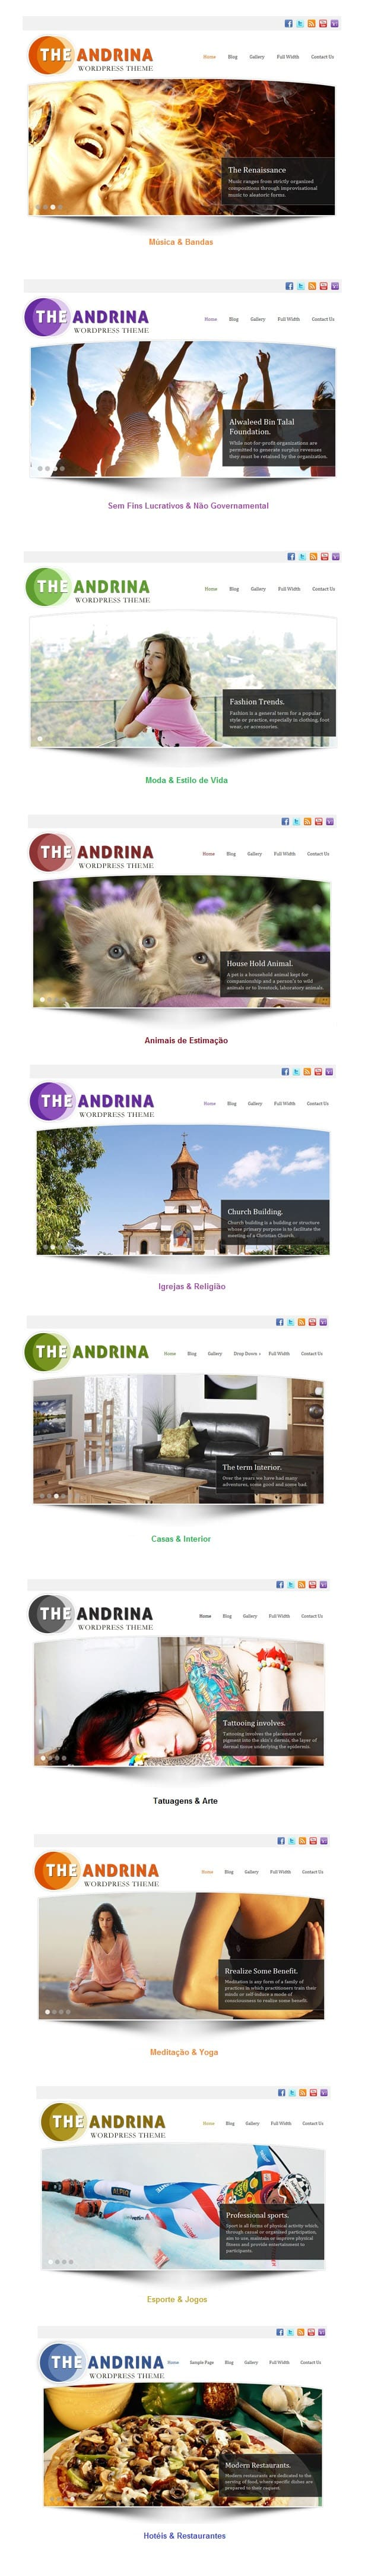 totalscripts_andrina-theme